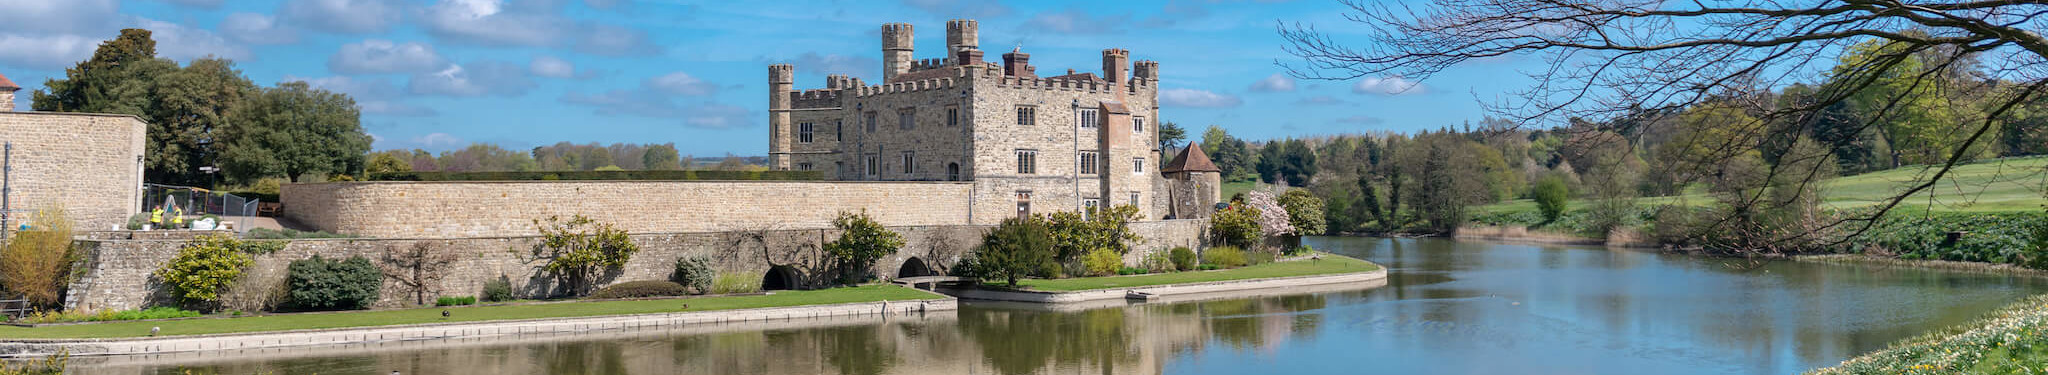 Leeds Castle near London